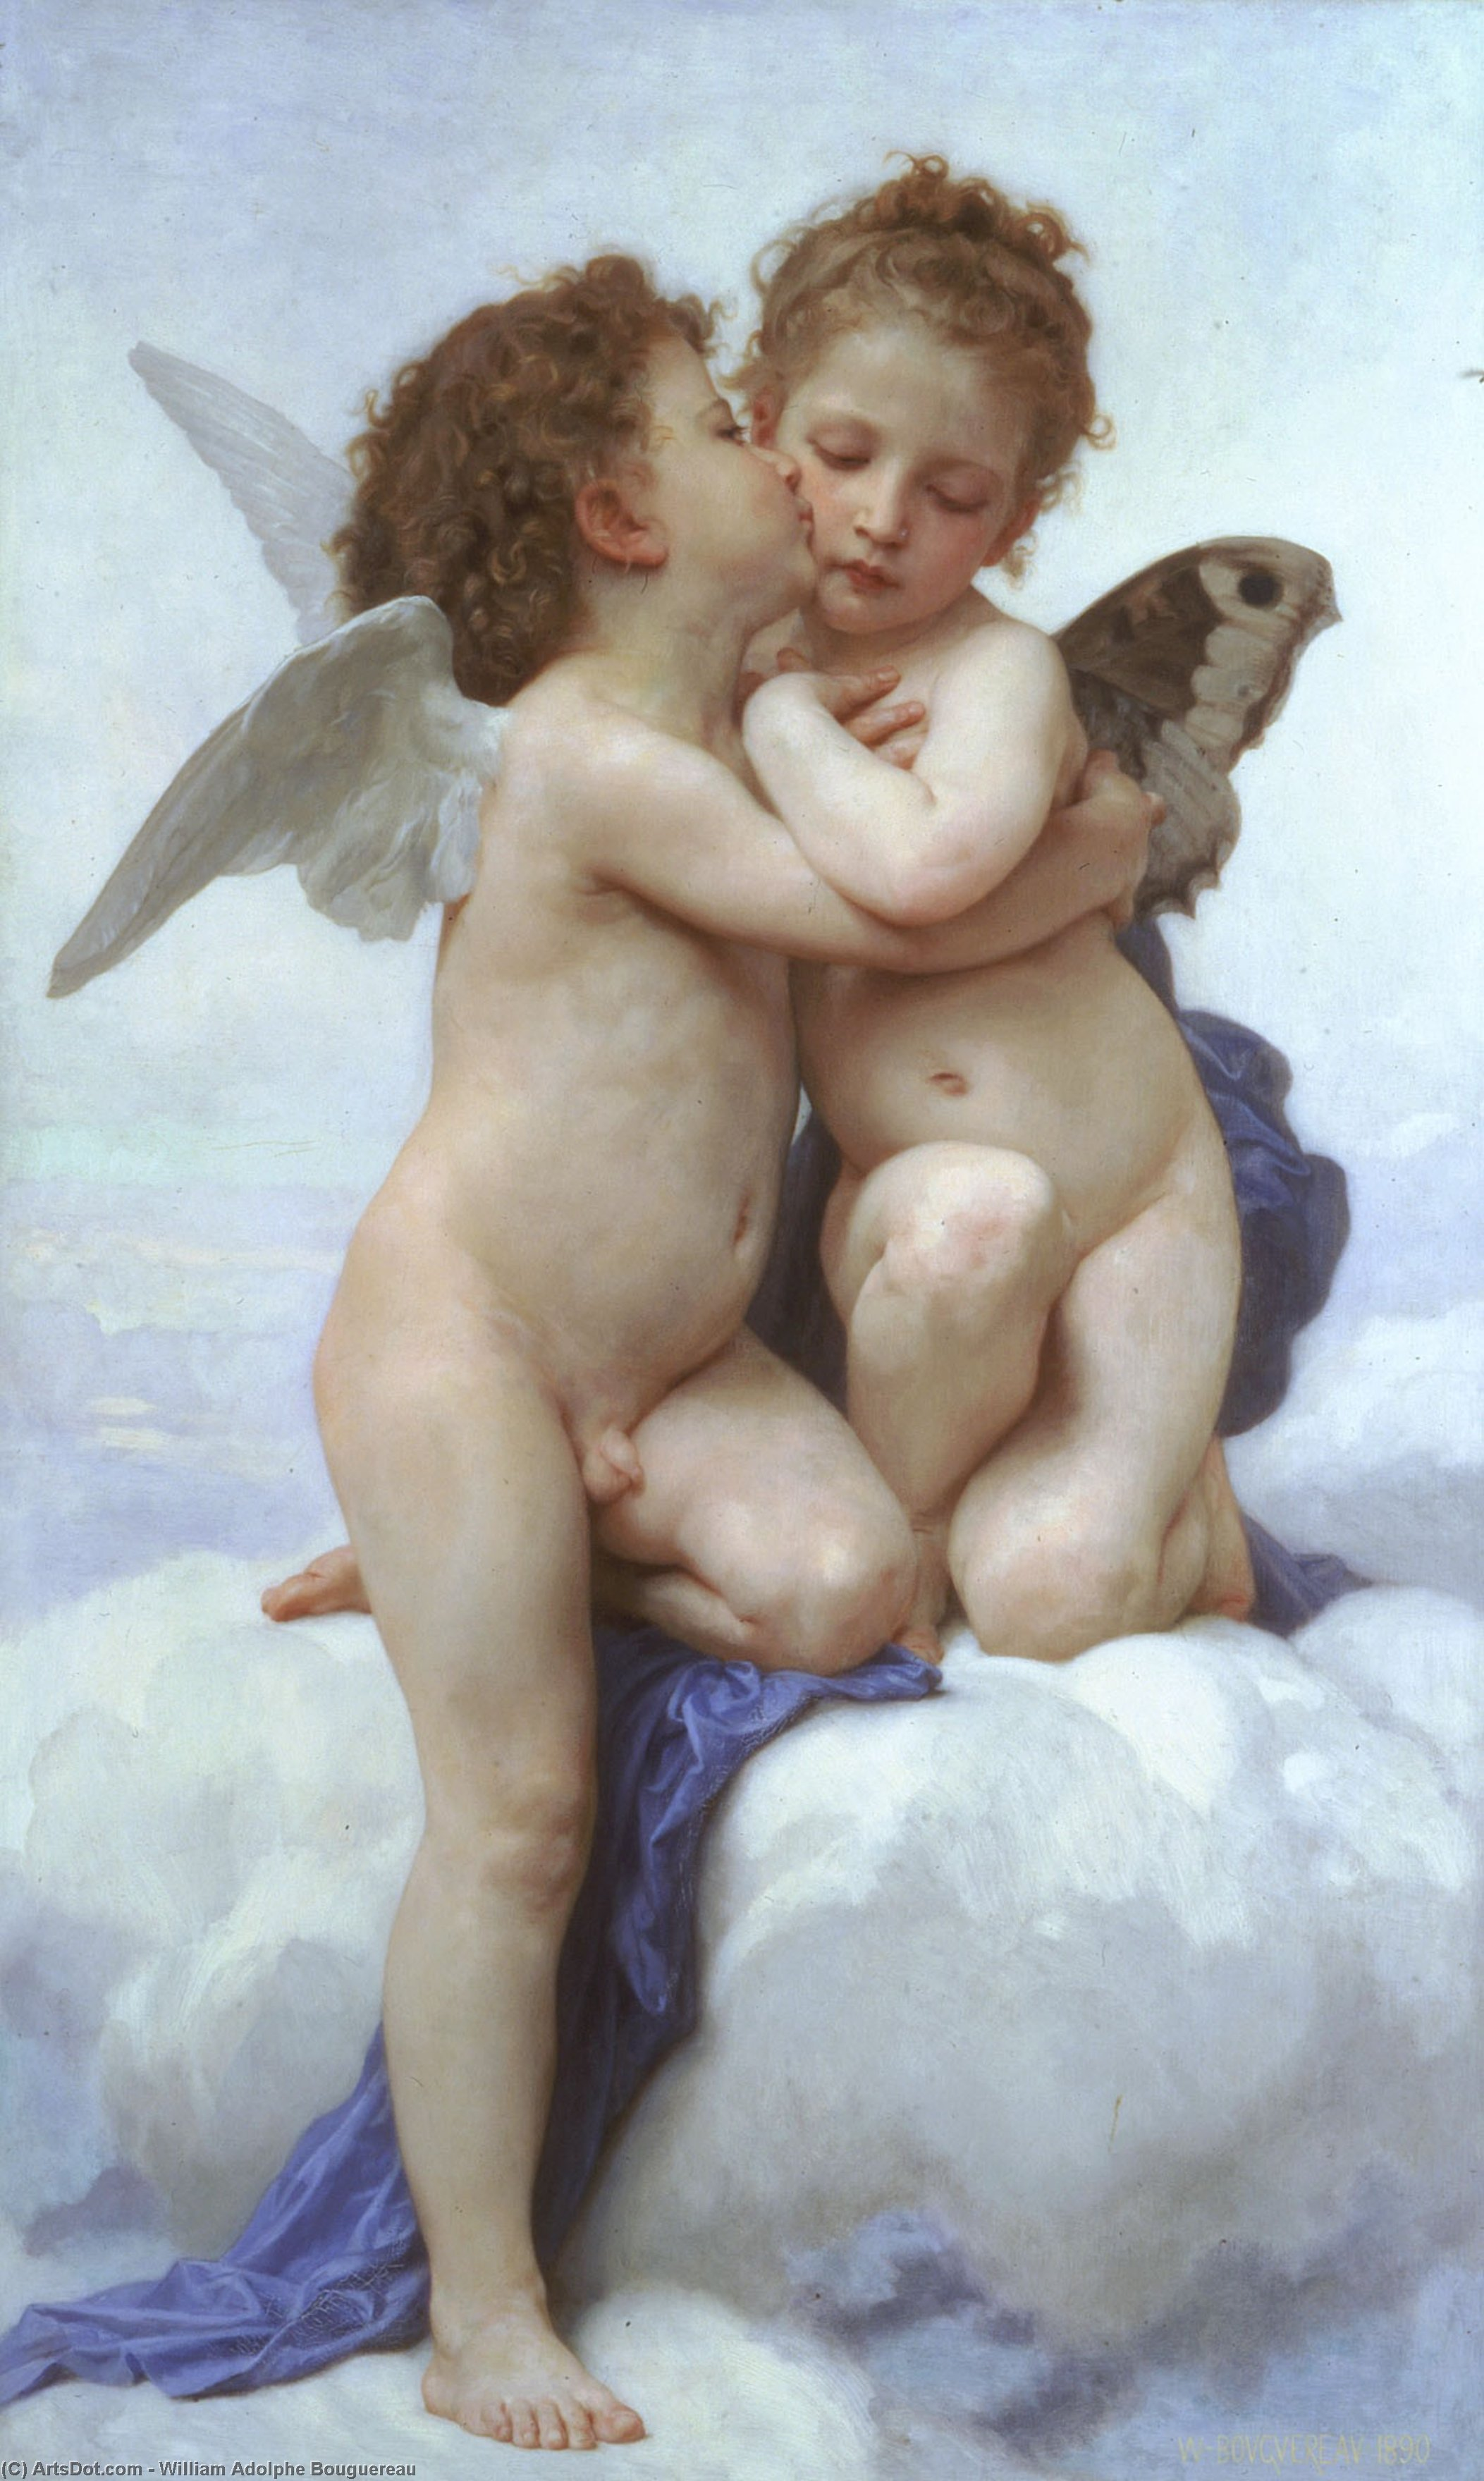 WikiOO.org - 百科事典 - 絵画、アートワーク William Adolphe Bouguereau - ラムールとプシュケ子供